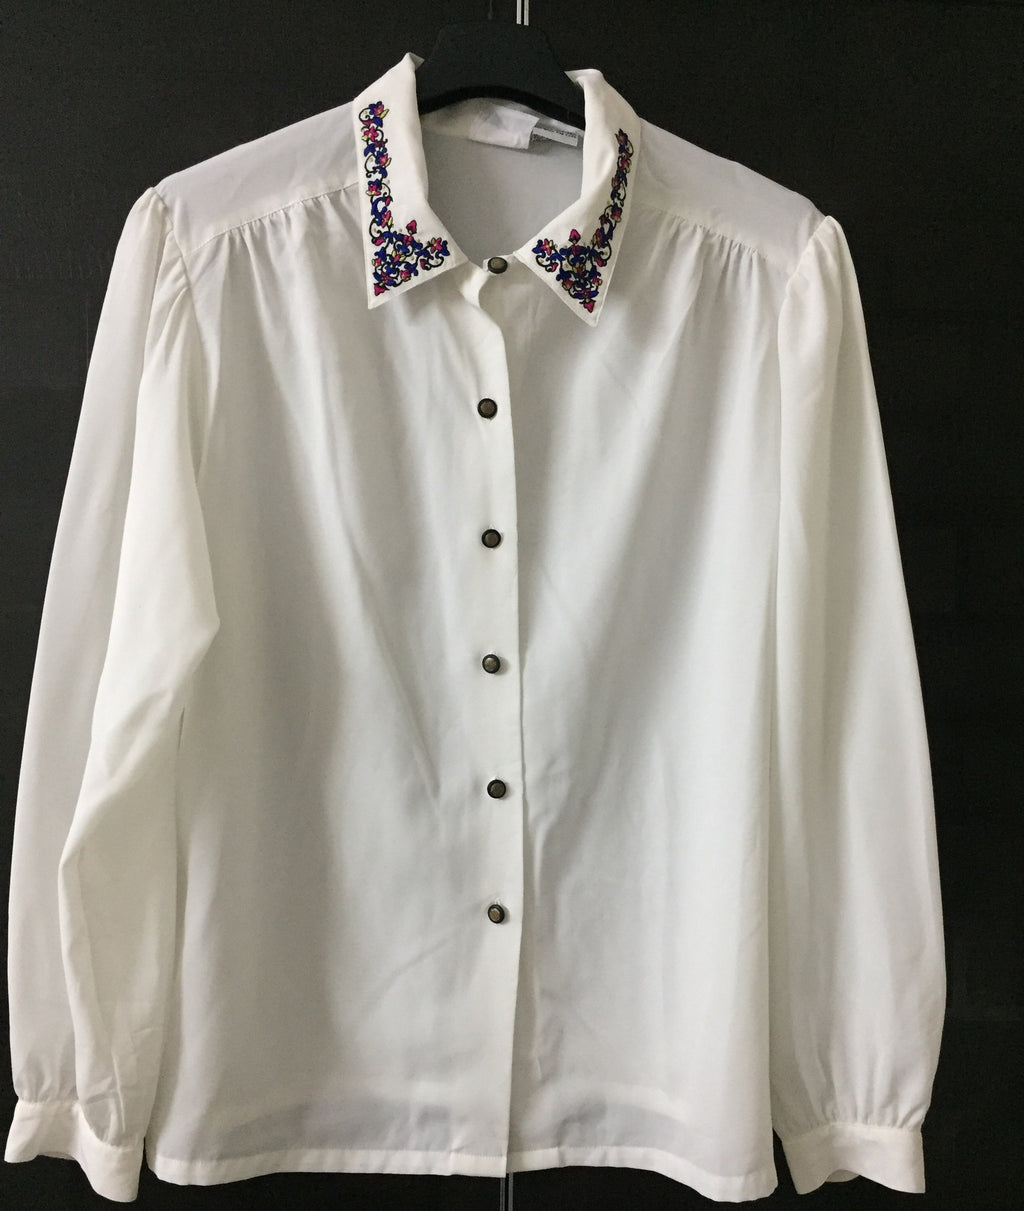 White Shirt with Blue - Pink embroidery on collars